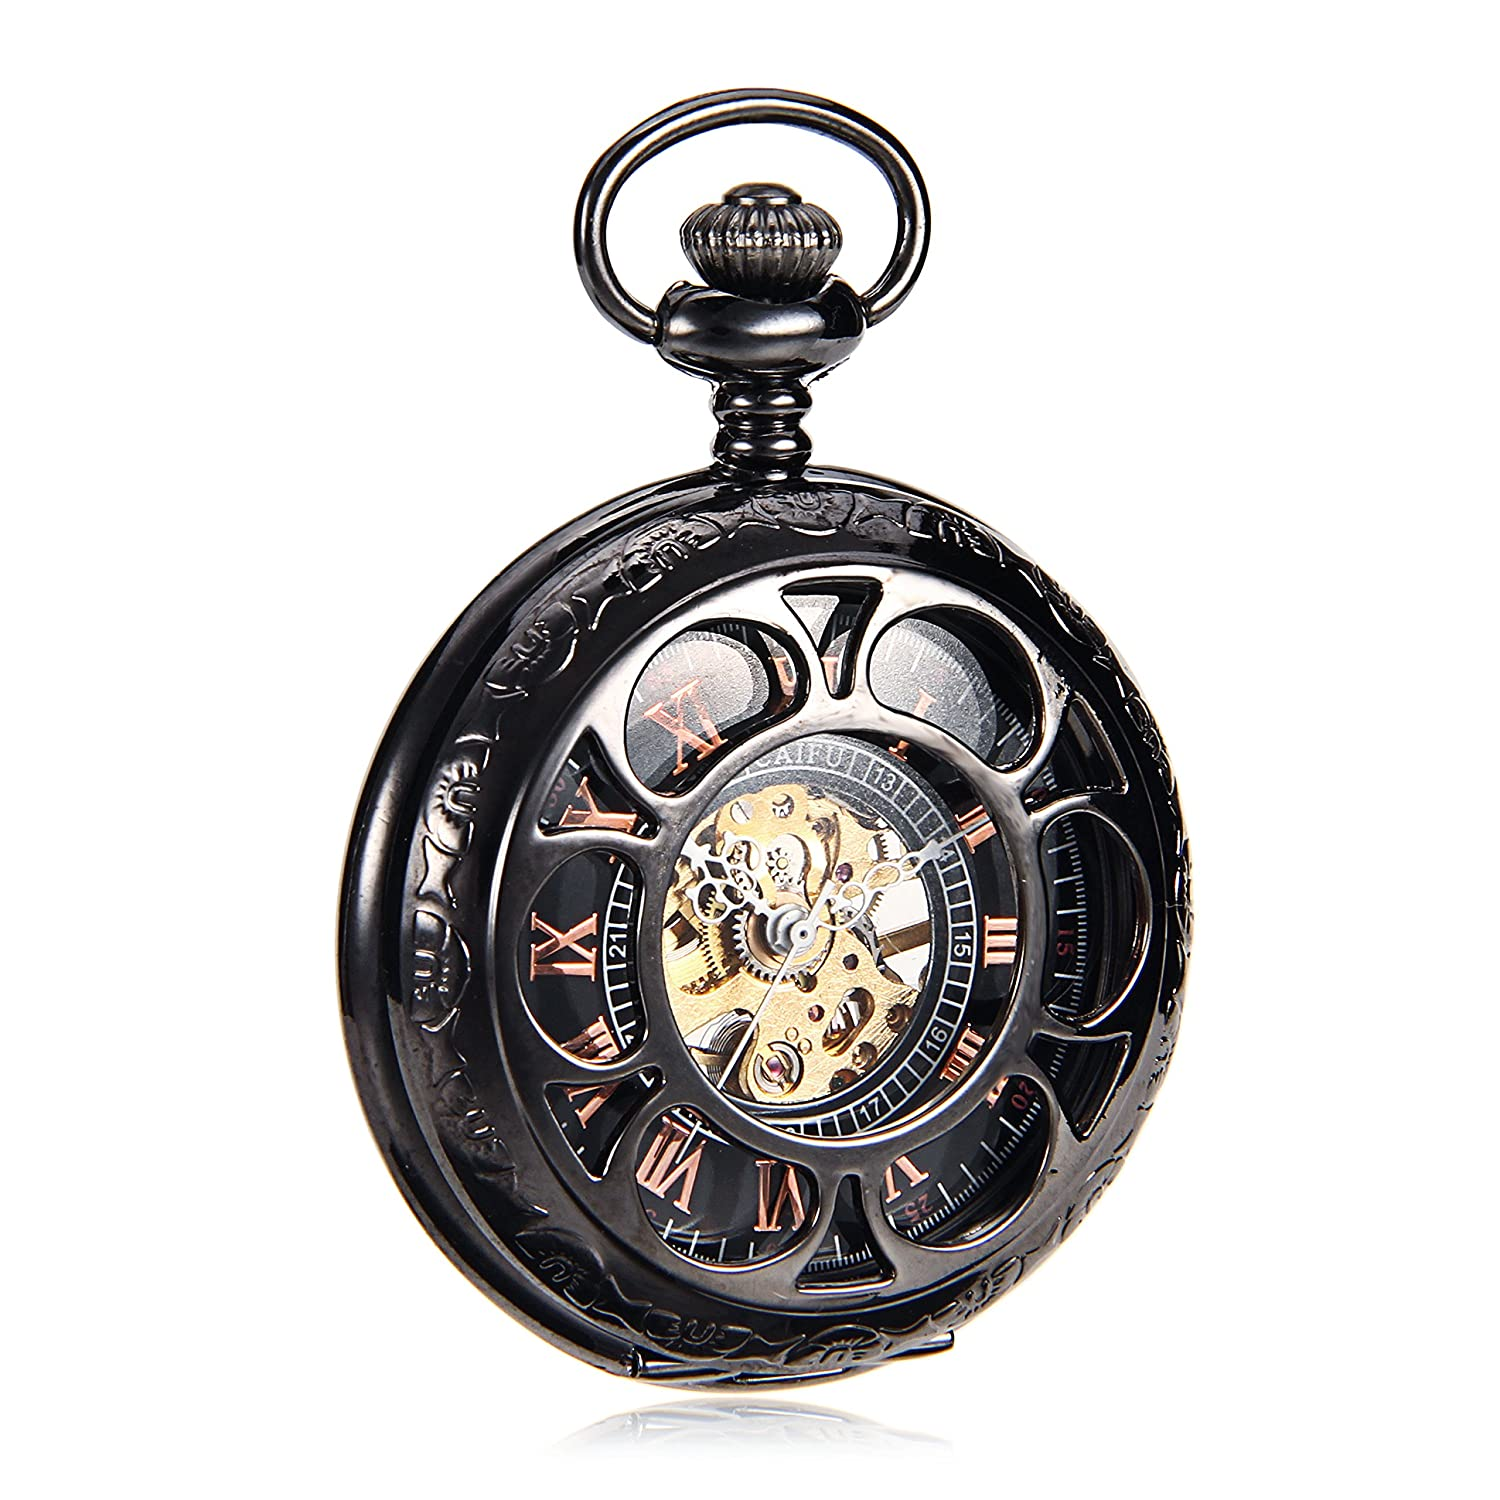 Amazon.com: Reloj Steampunk Mens Titanium Mechanical Pocket Watch Vintage Pendant Black Pendant Watch Chain Orologio Da Tasca: Watches